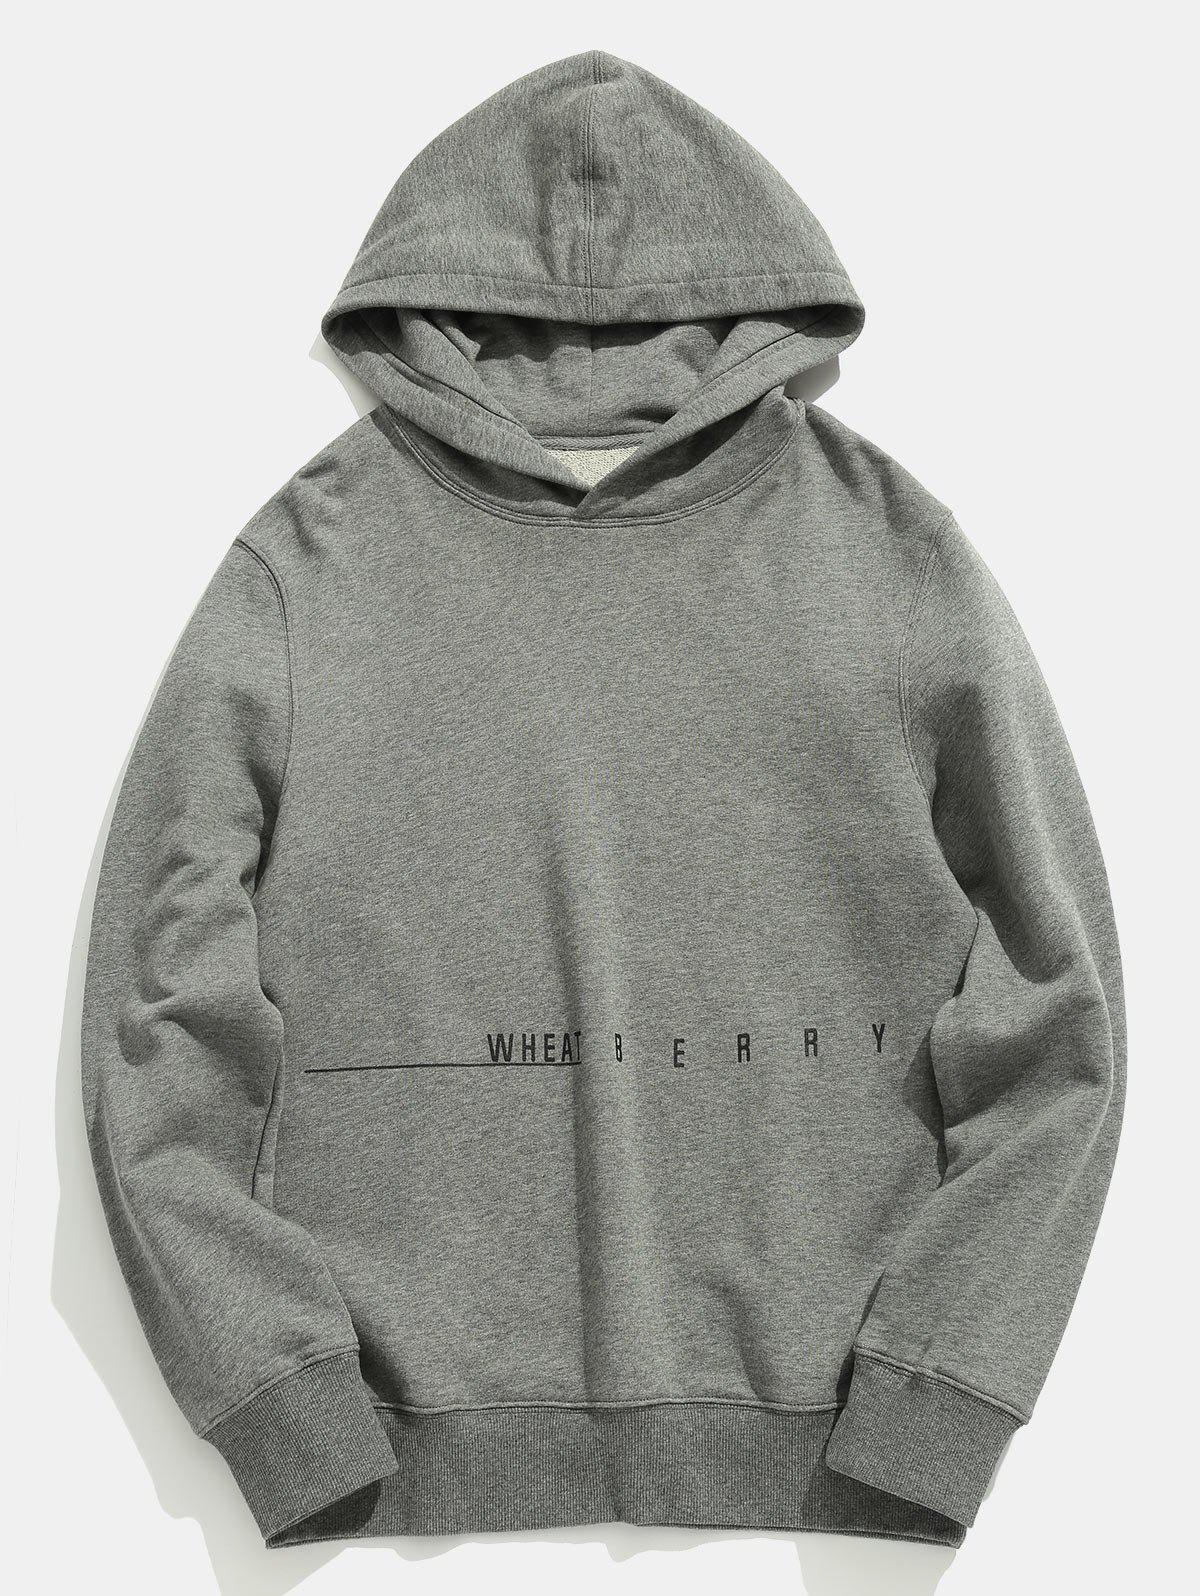 Letter Printed Solid Color Casual Hoodie 272670405